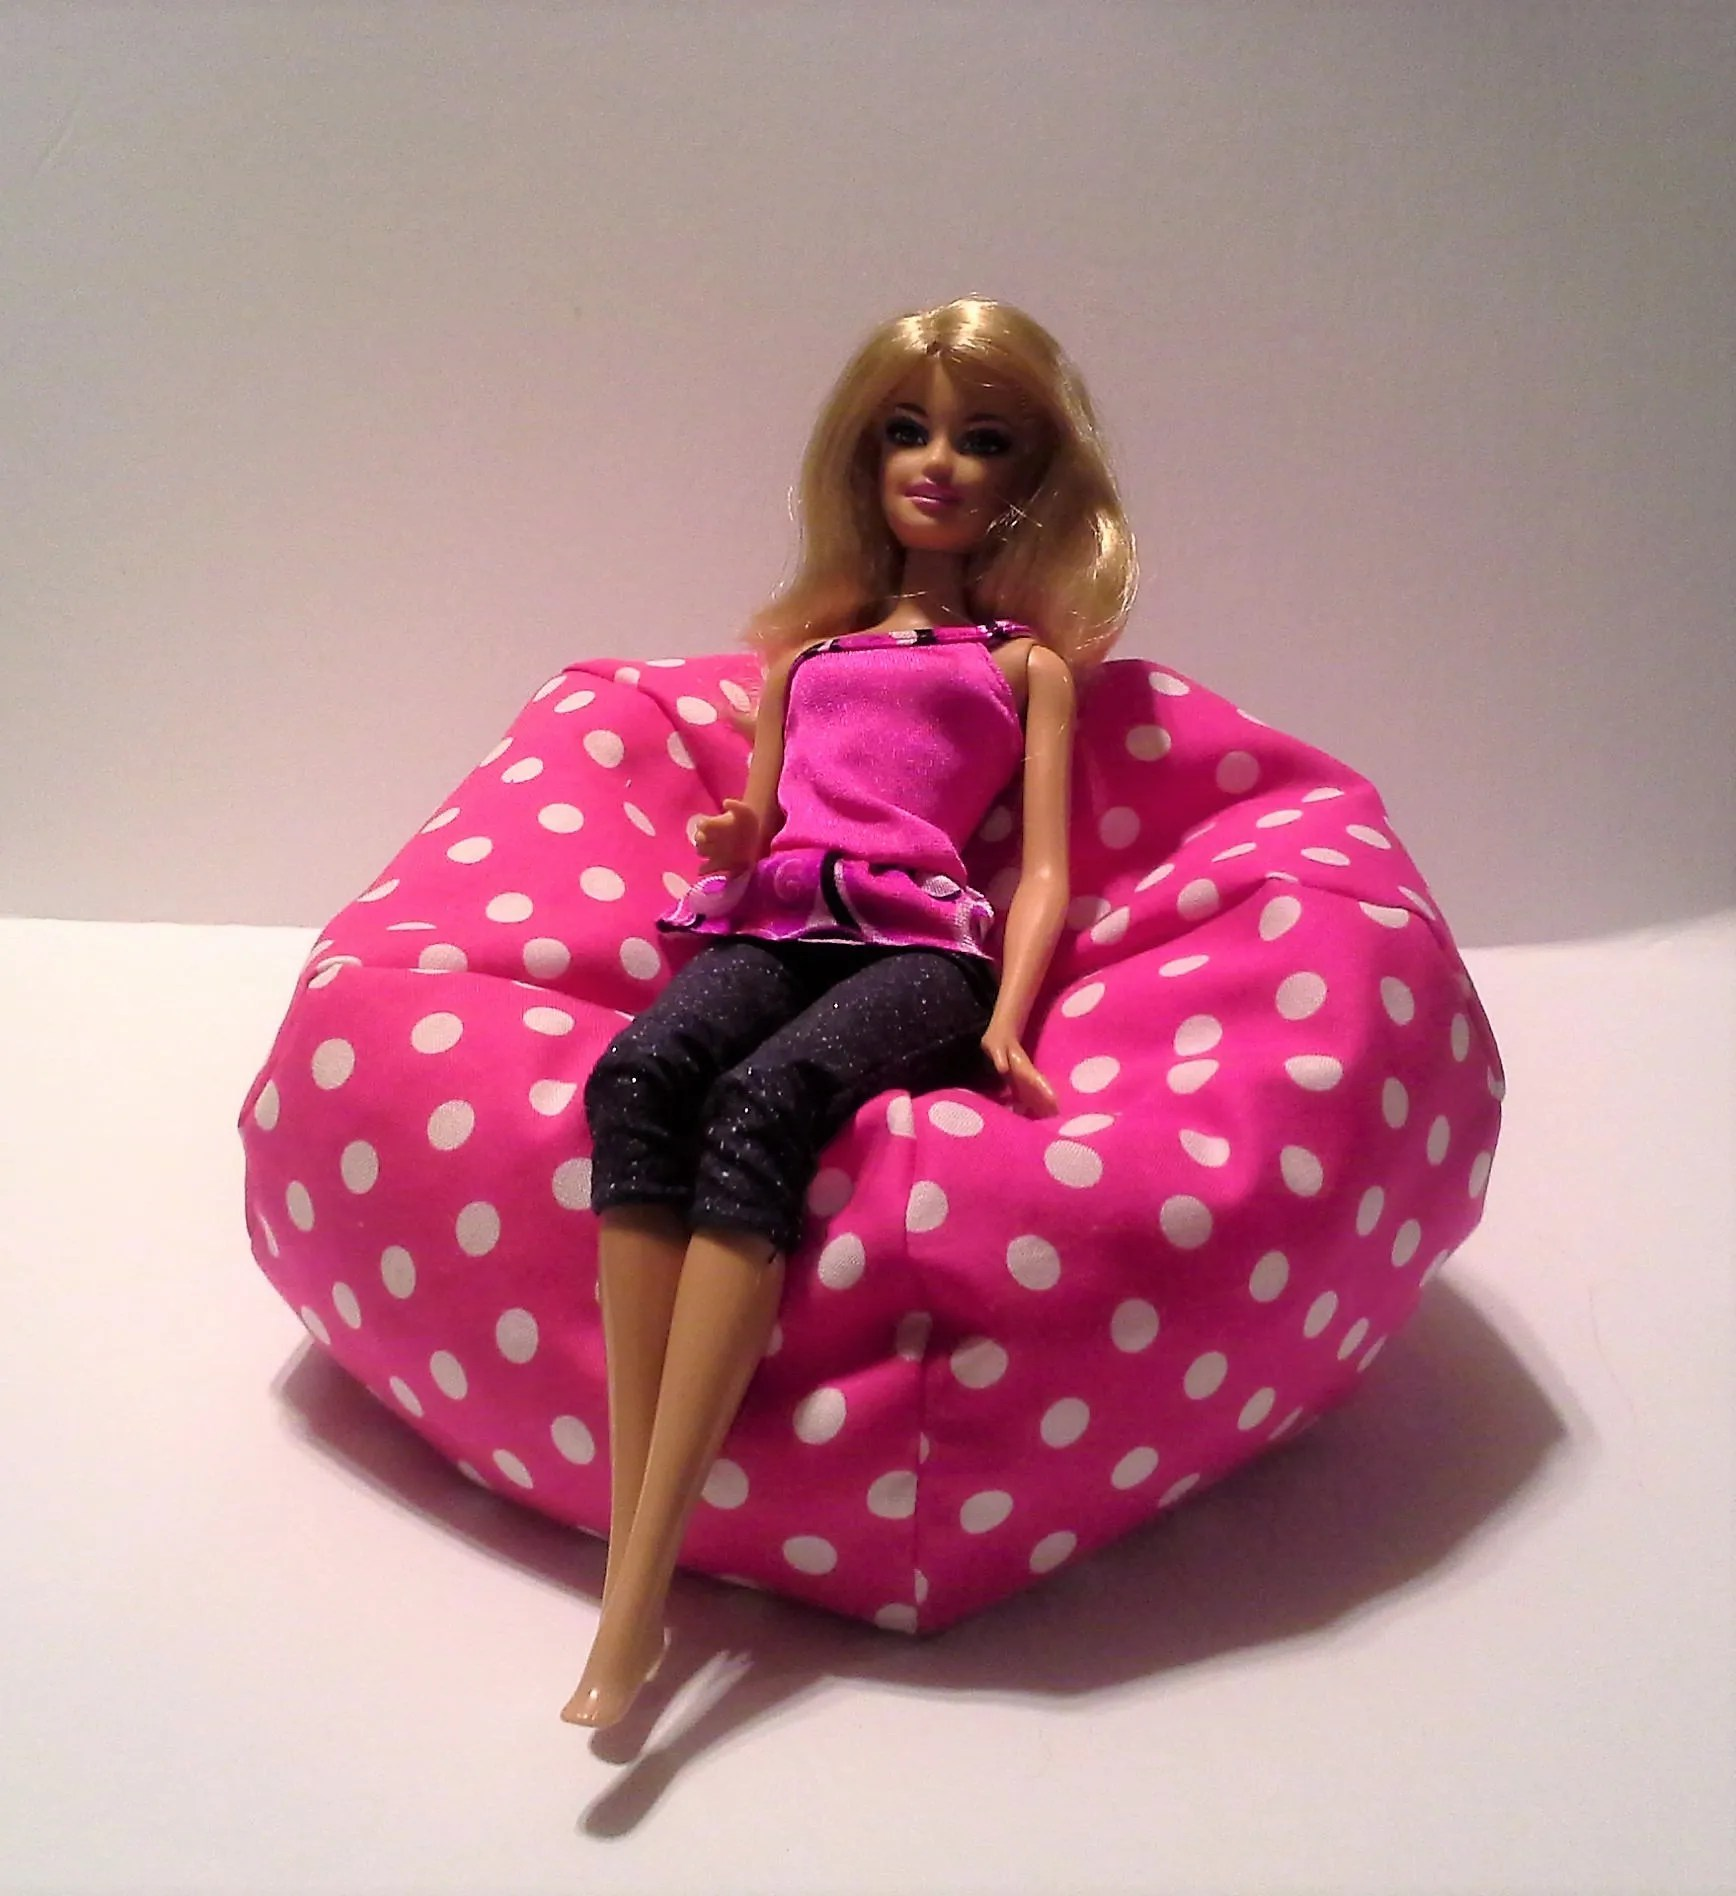 barbie bean bag chair small with ottoman hot pink theme and white polka etsy 50